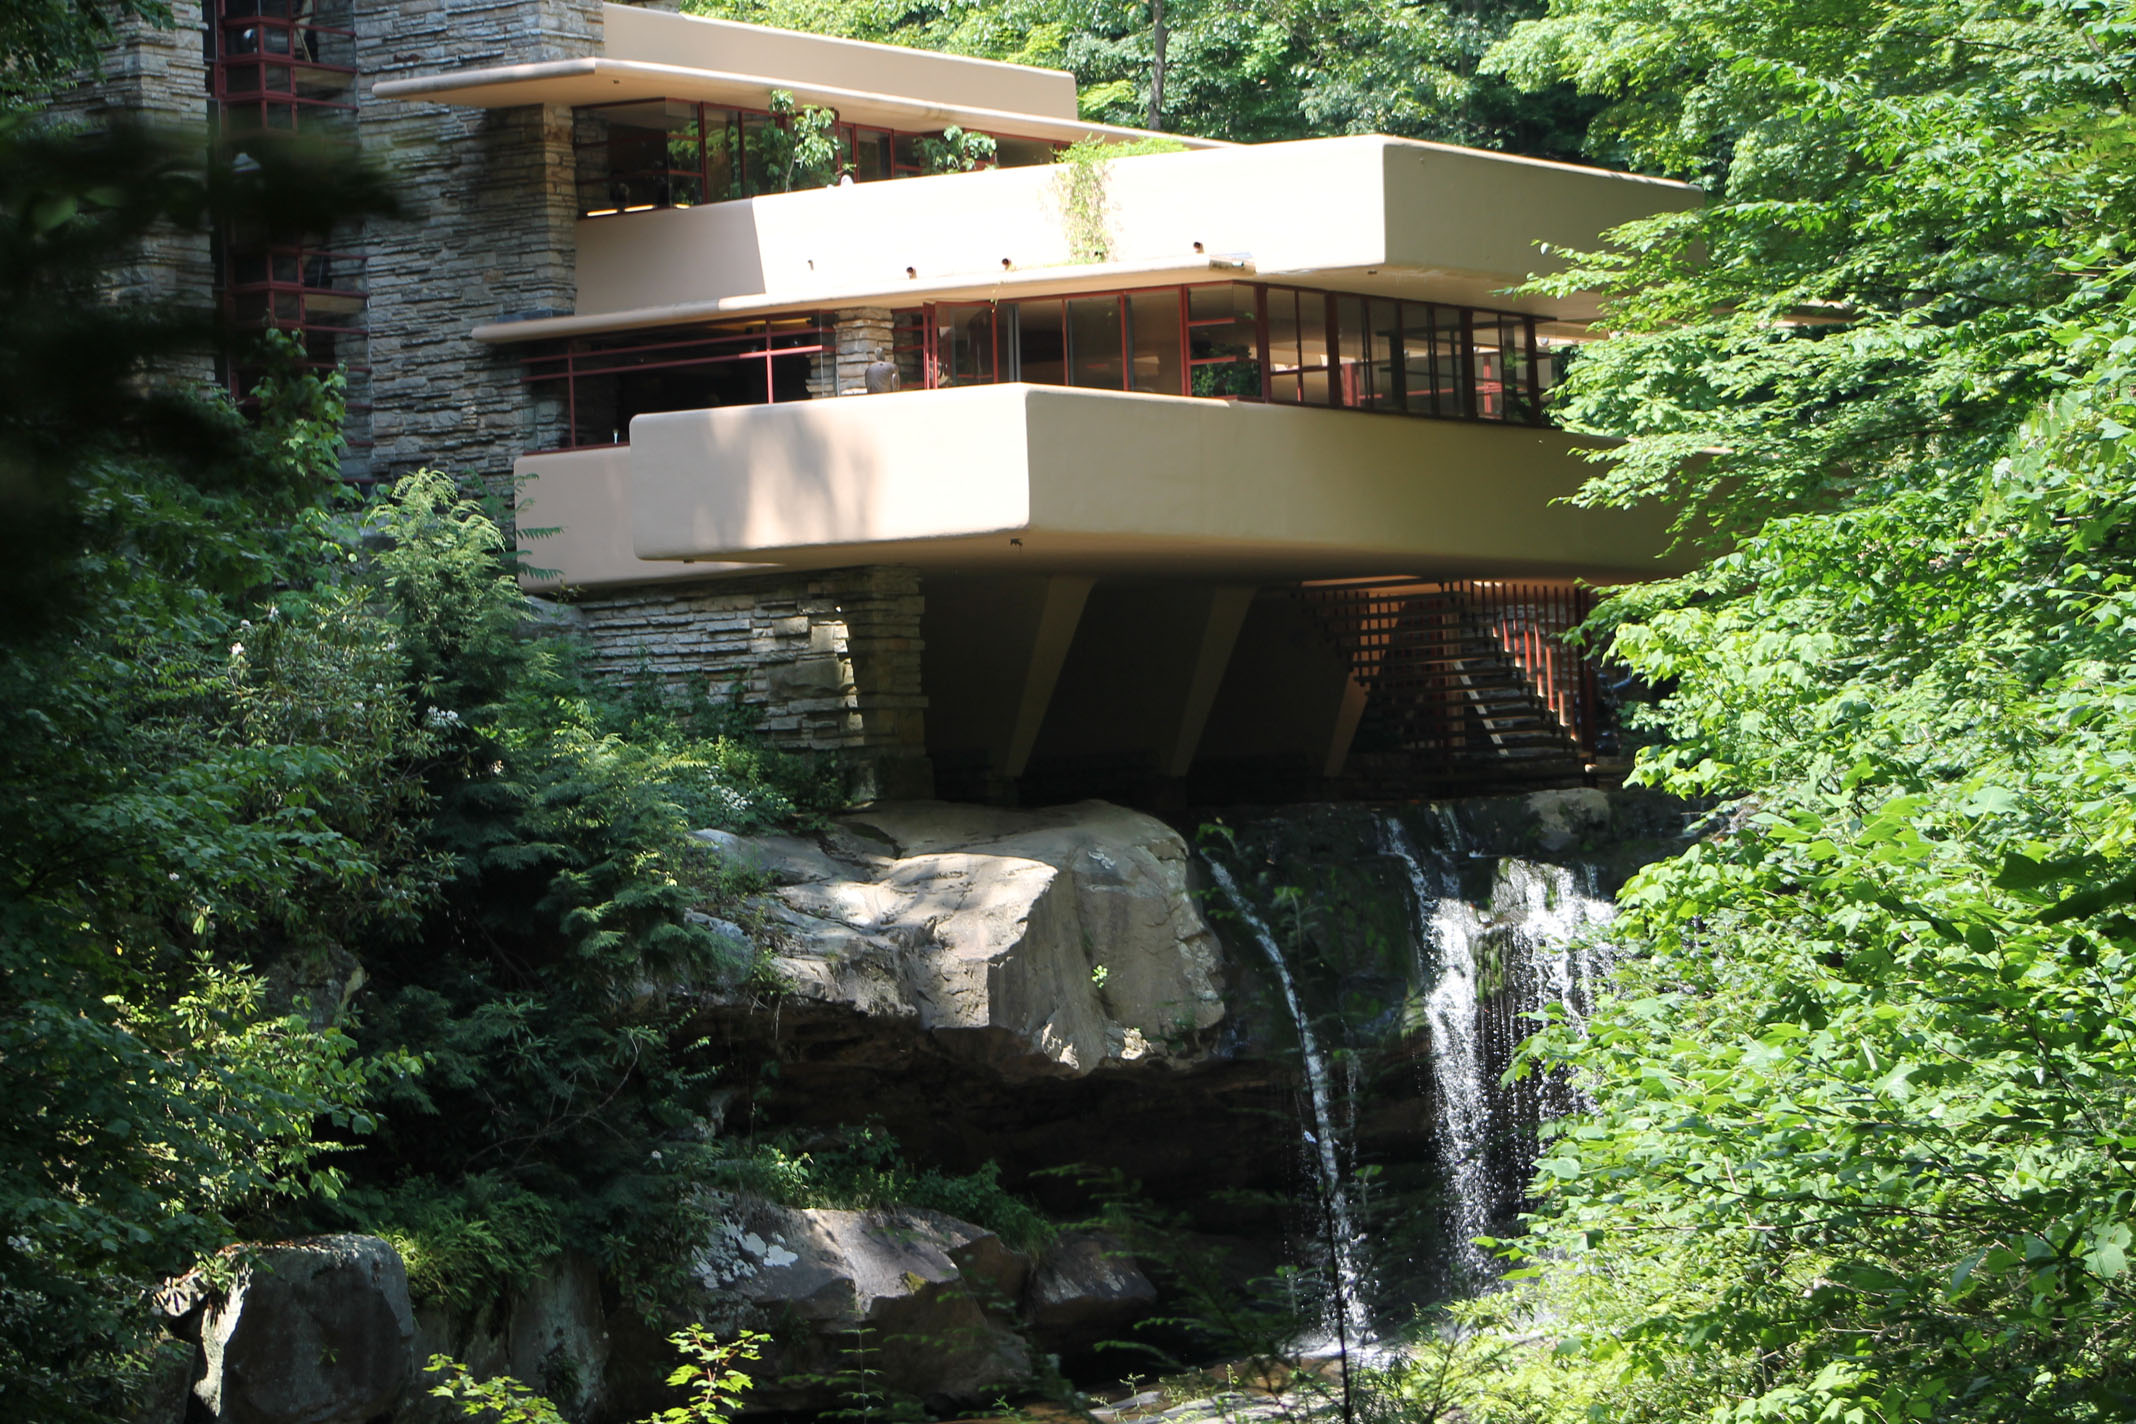 fallingwater by wrights Fallingwater: fallingwater, weekend residence situated over a waterfall in southwestern pennsylvania designed by american architect frank lloyd wright in 1935.